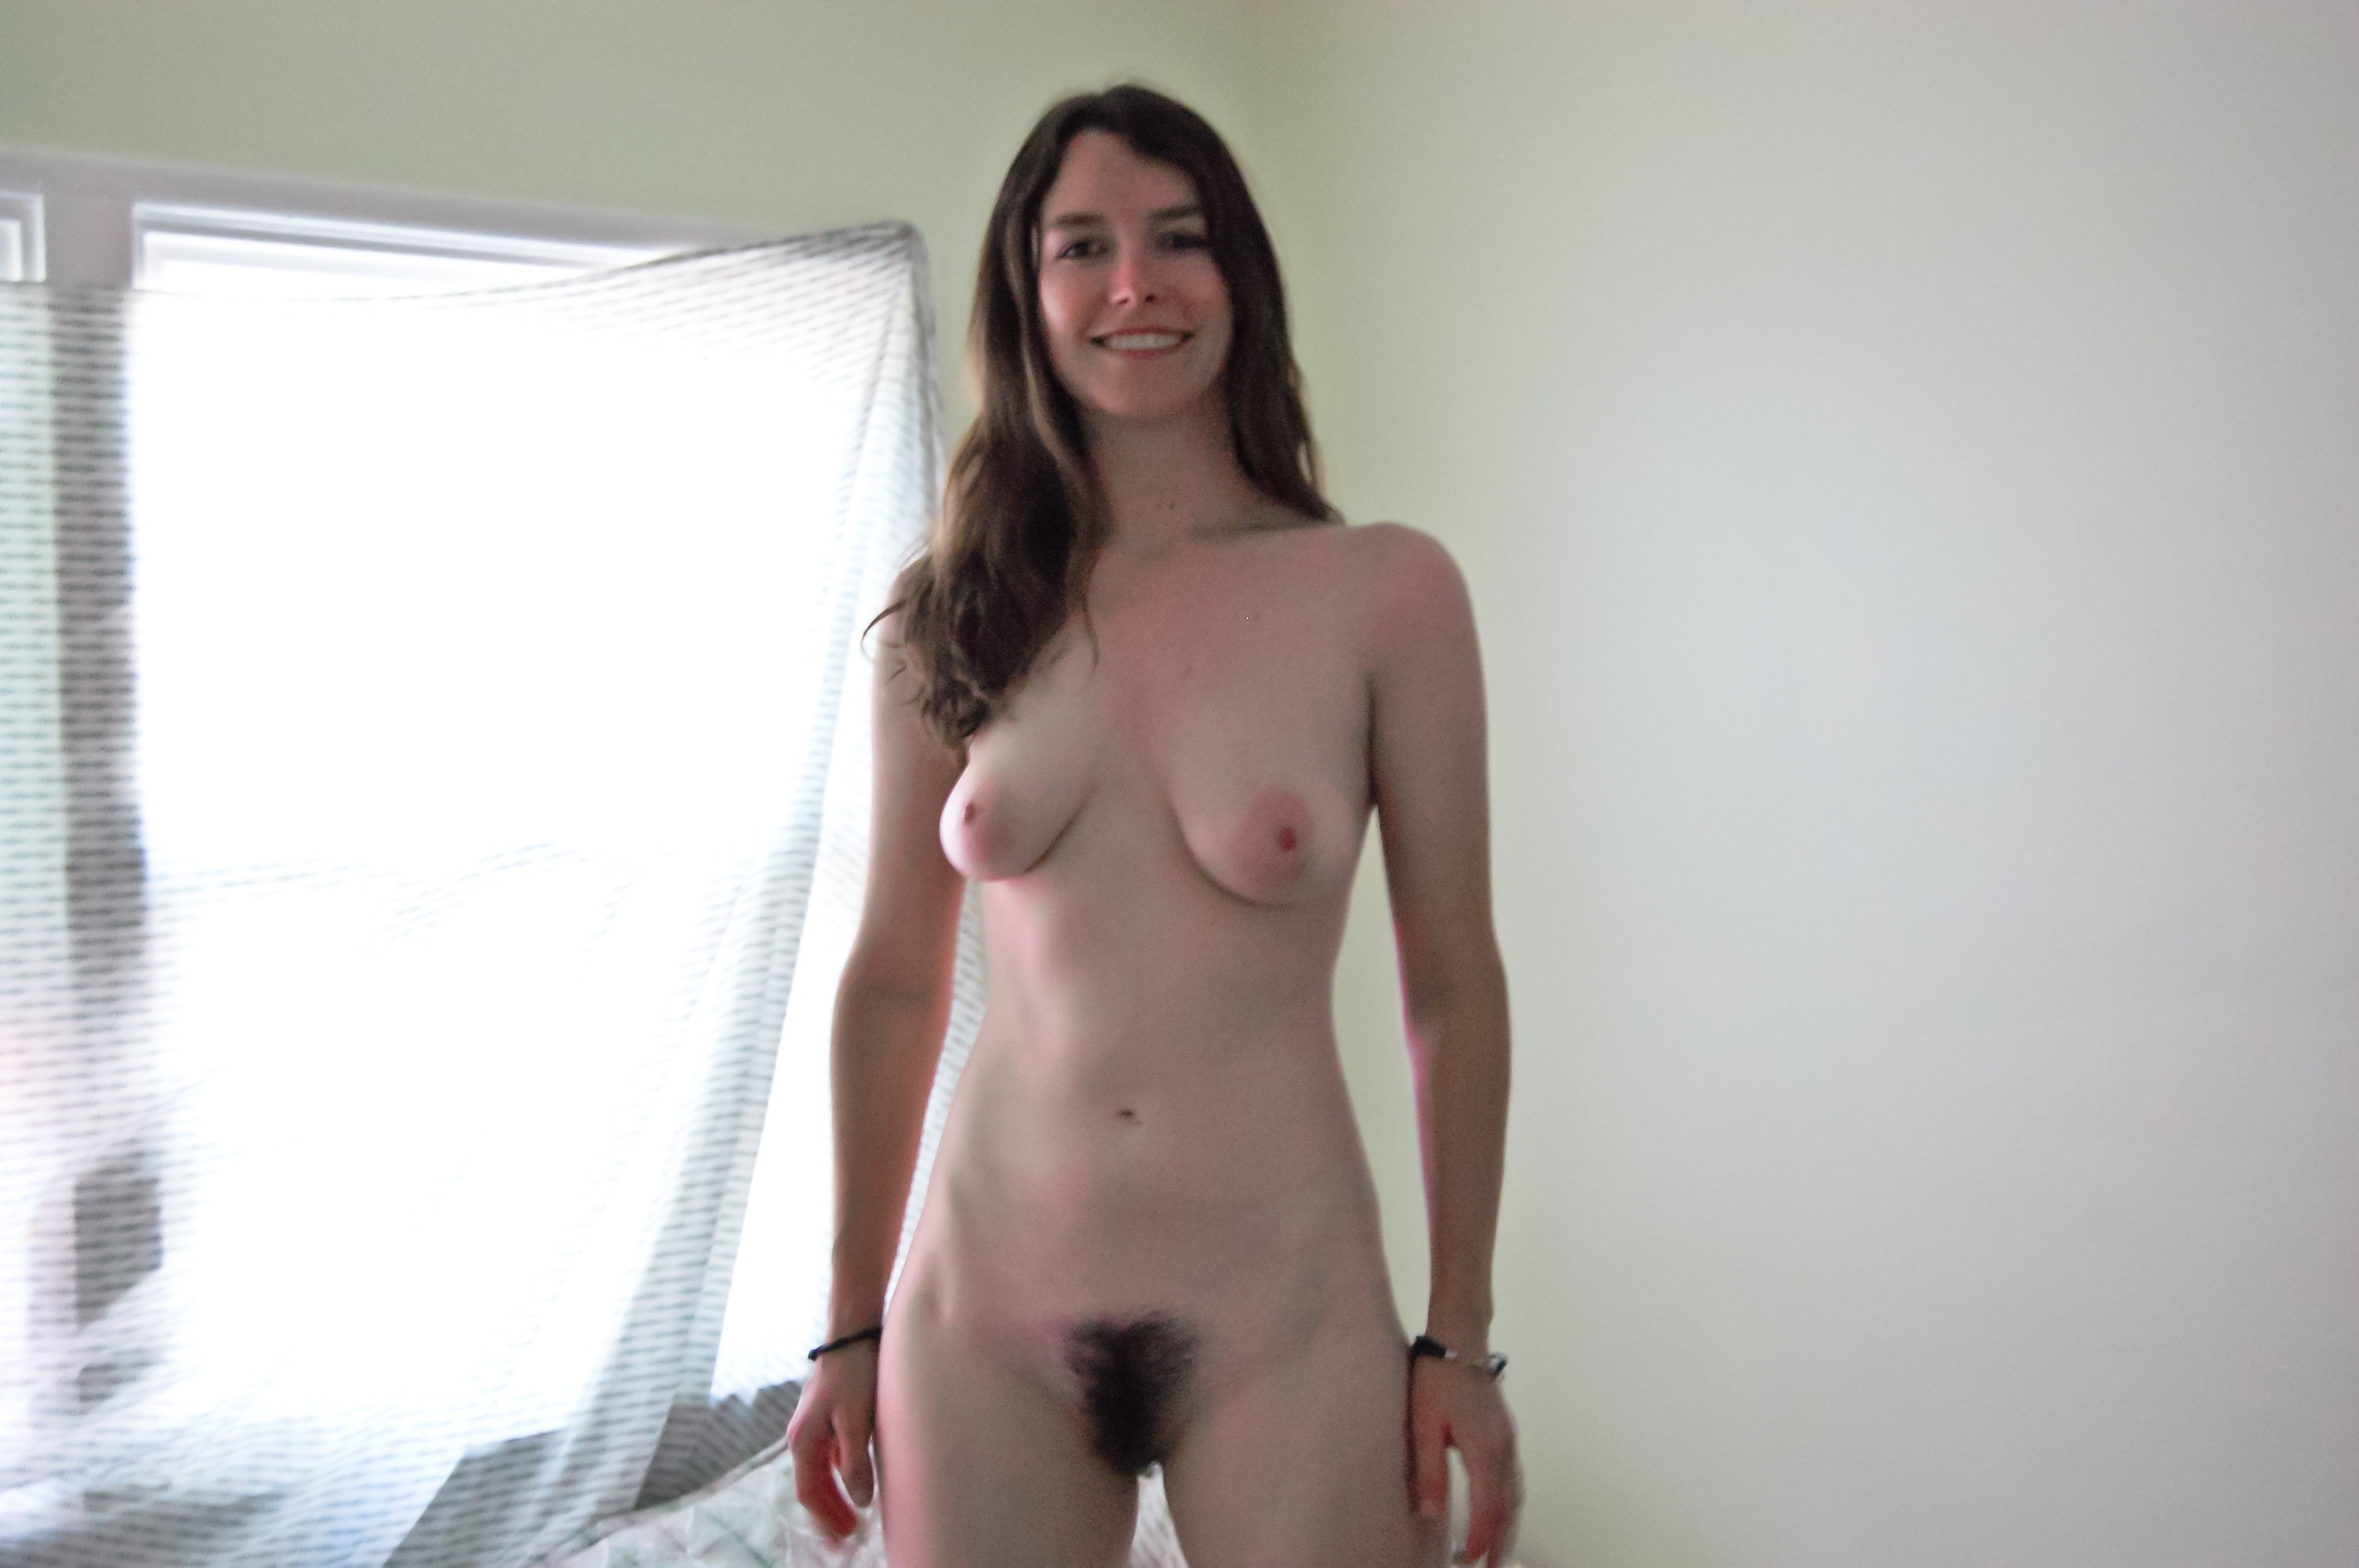 dogging wife redtube free gangbang porn videos group movies